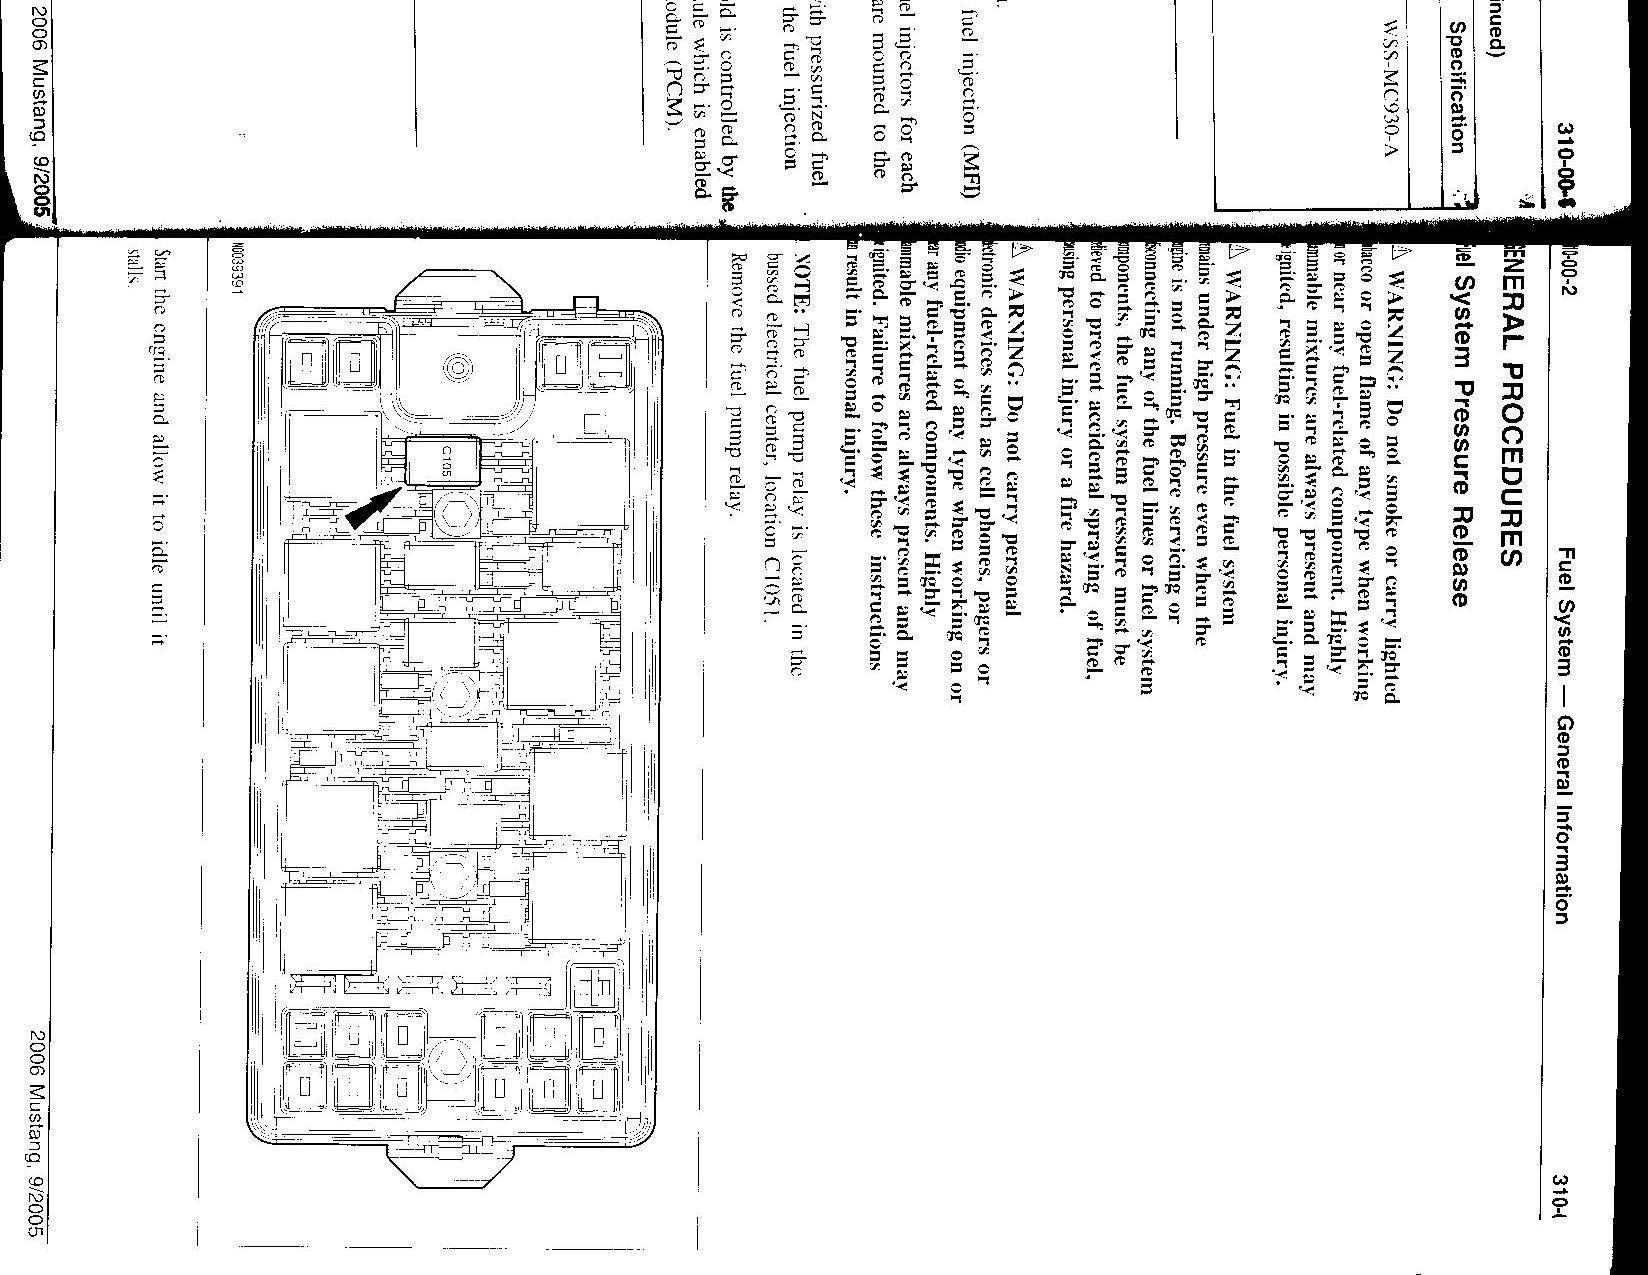 hight resolution of 07 mustang fuse diagram wiring diagram2005 mustang fuse box diagram 17